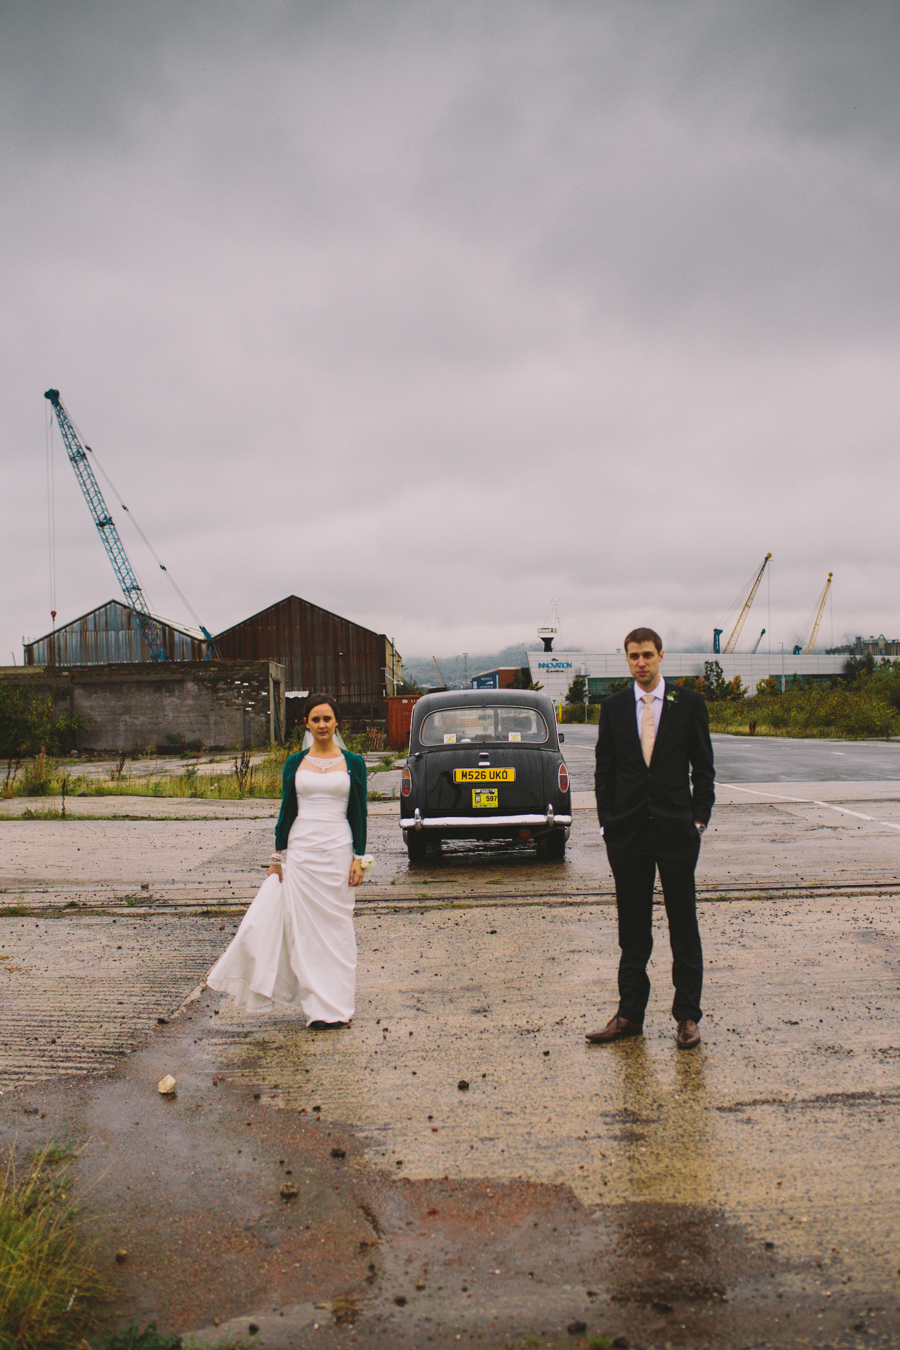 Alternative Wedding Photographer Northern Ireland, bride and groom with Black Taxi cab, Titanic Quarter, Belfast